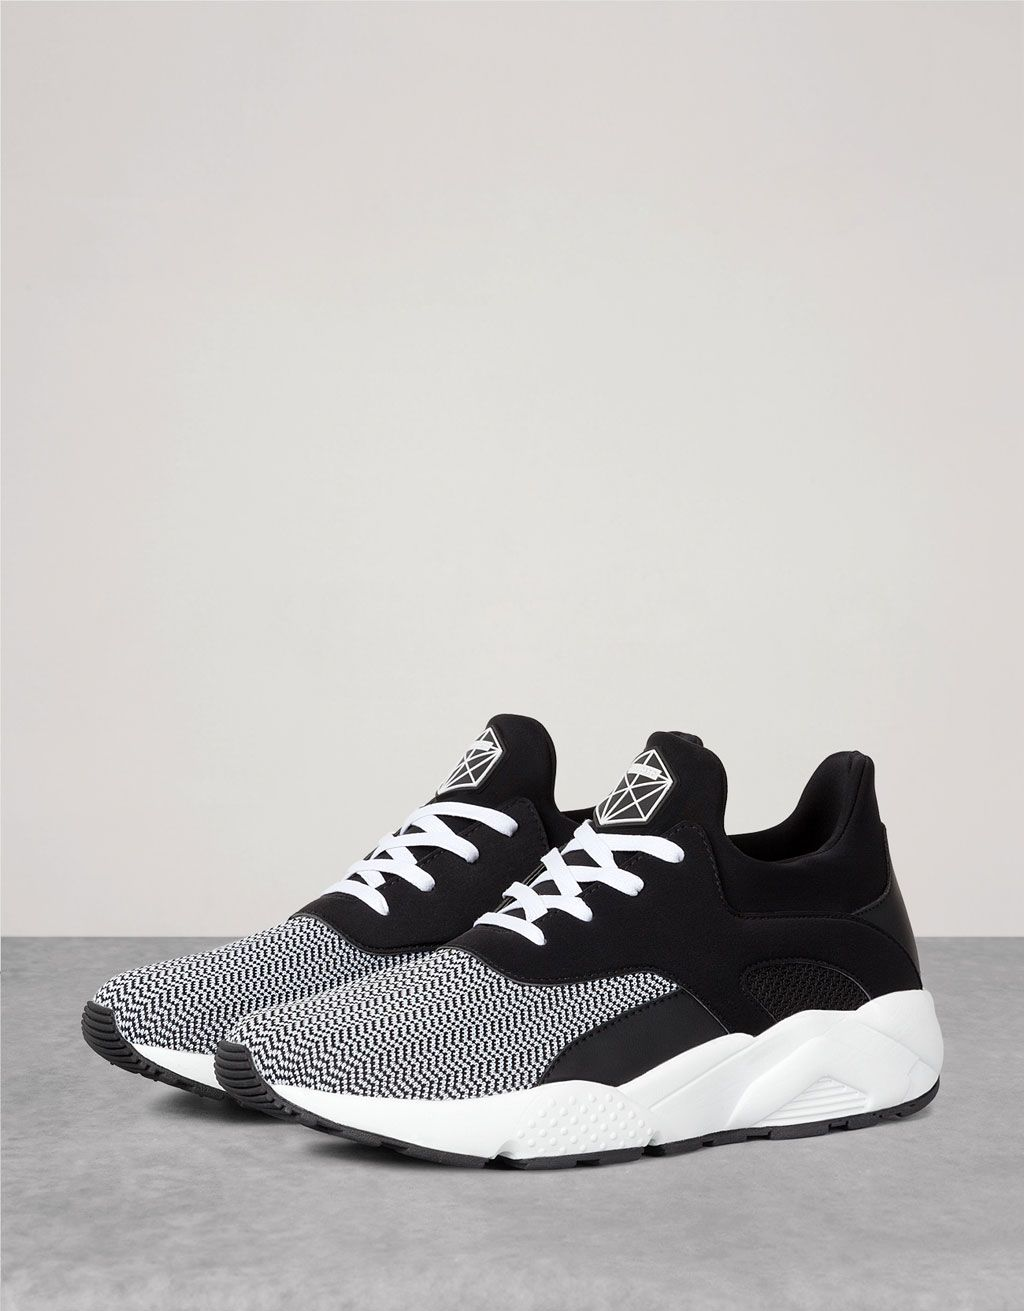 Men's technical combined sport sneakers - View All - Bershka Philippines